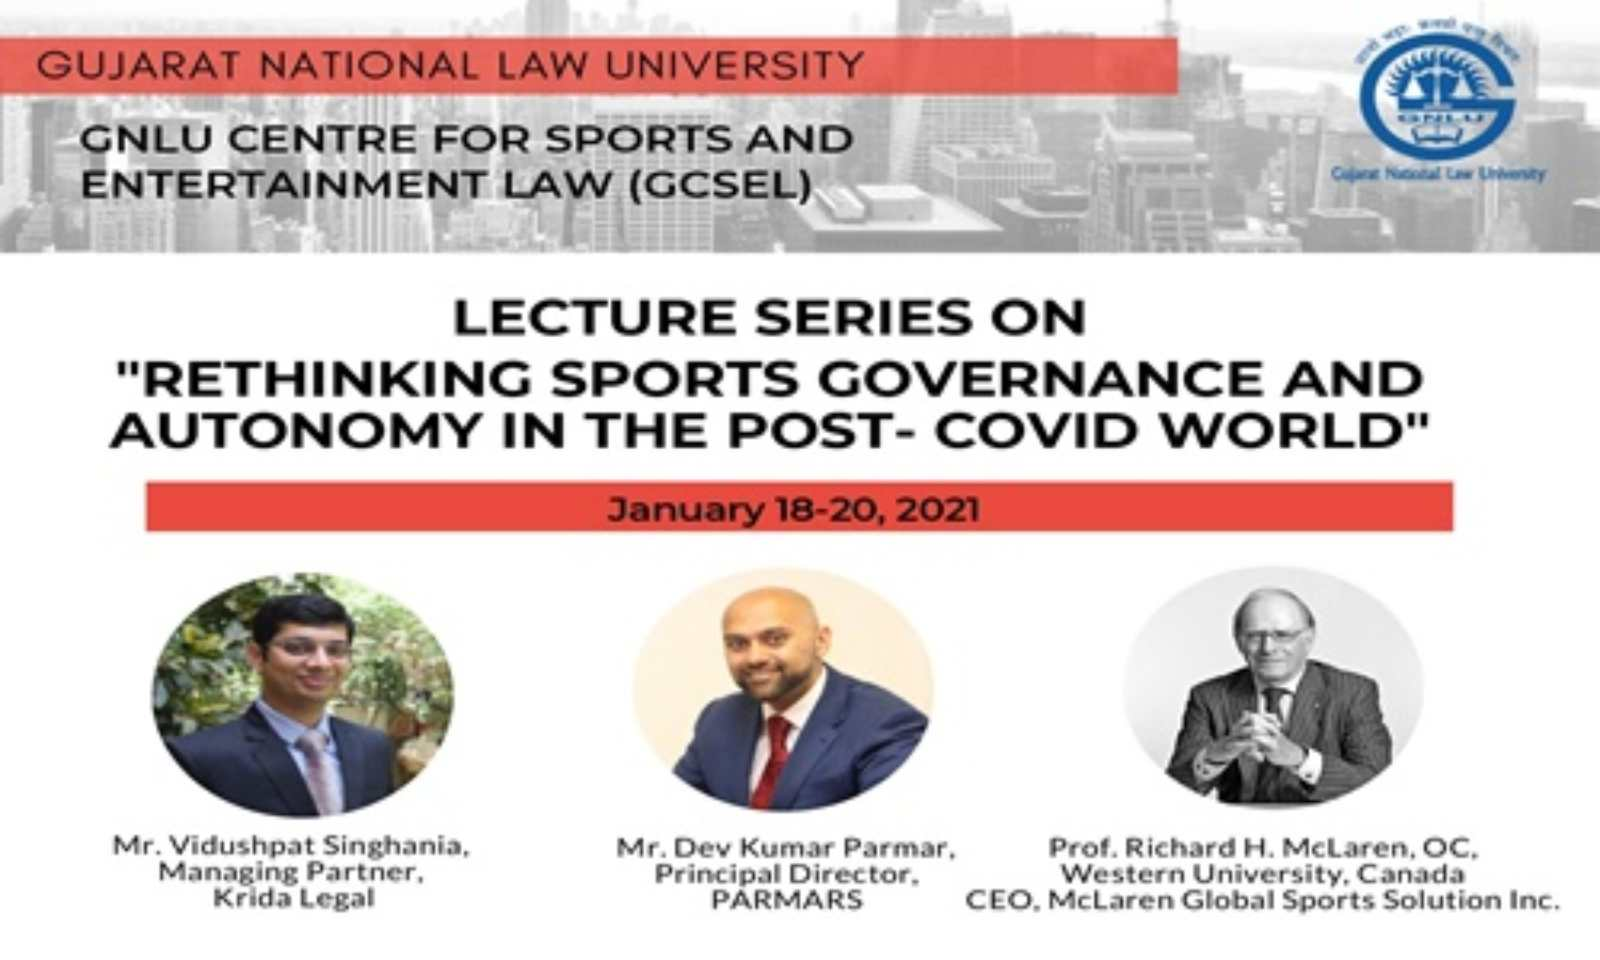 """GCSEL Lecture Series on """"Rethinking Sports Governance and Autonomy in the Post-Covid World"""" (18-20 January, 2021)"""